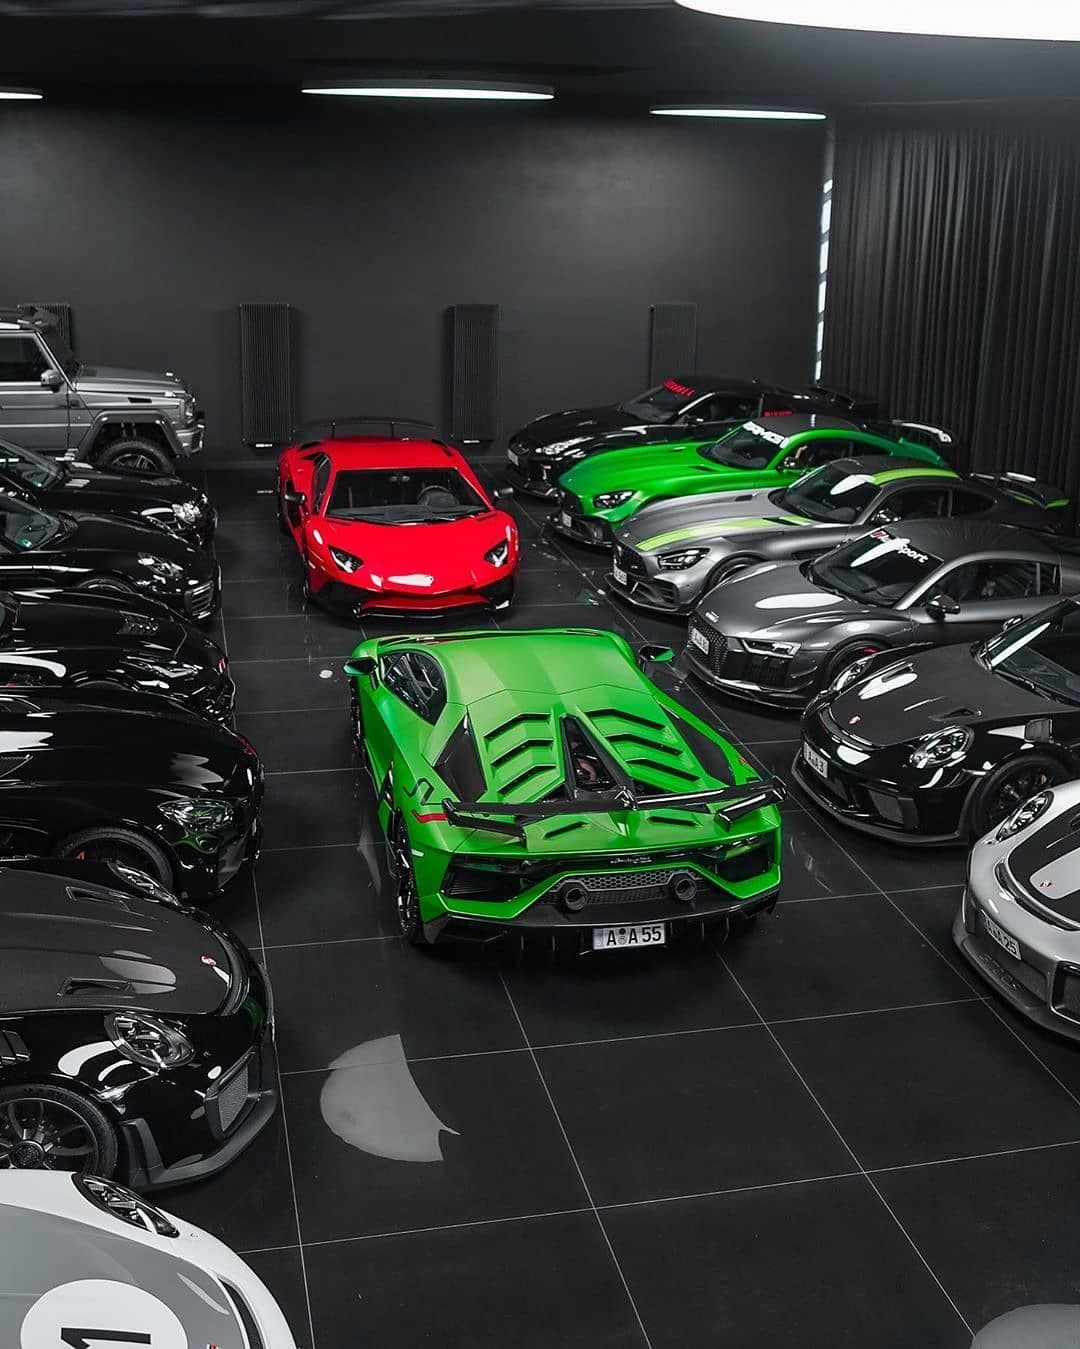 Brad The Supercar Lifestyle On Instagram The Blackhall Has One Of The Very Best Private Collections Out There Which Is Your In 2020 Car Collection Car Super Cars